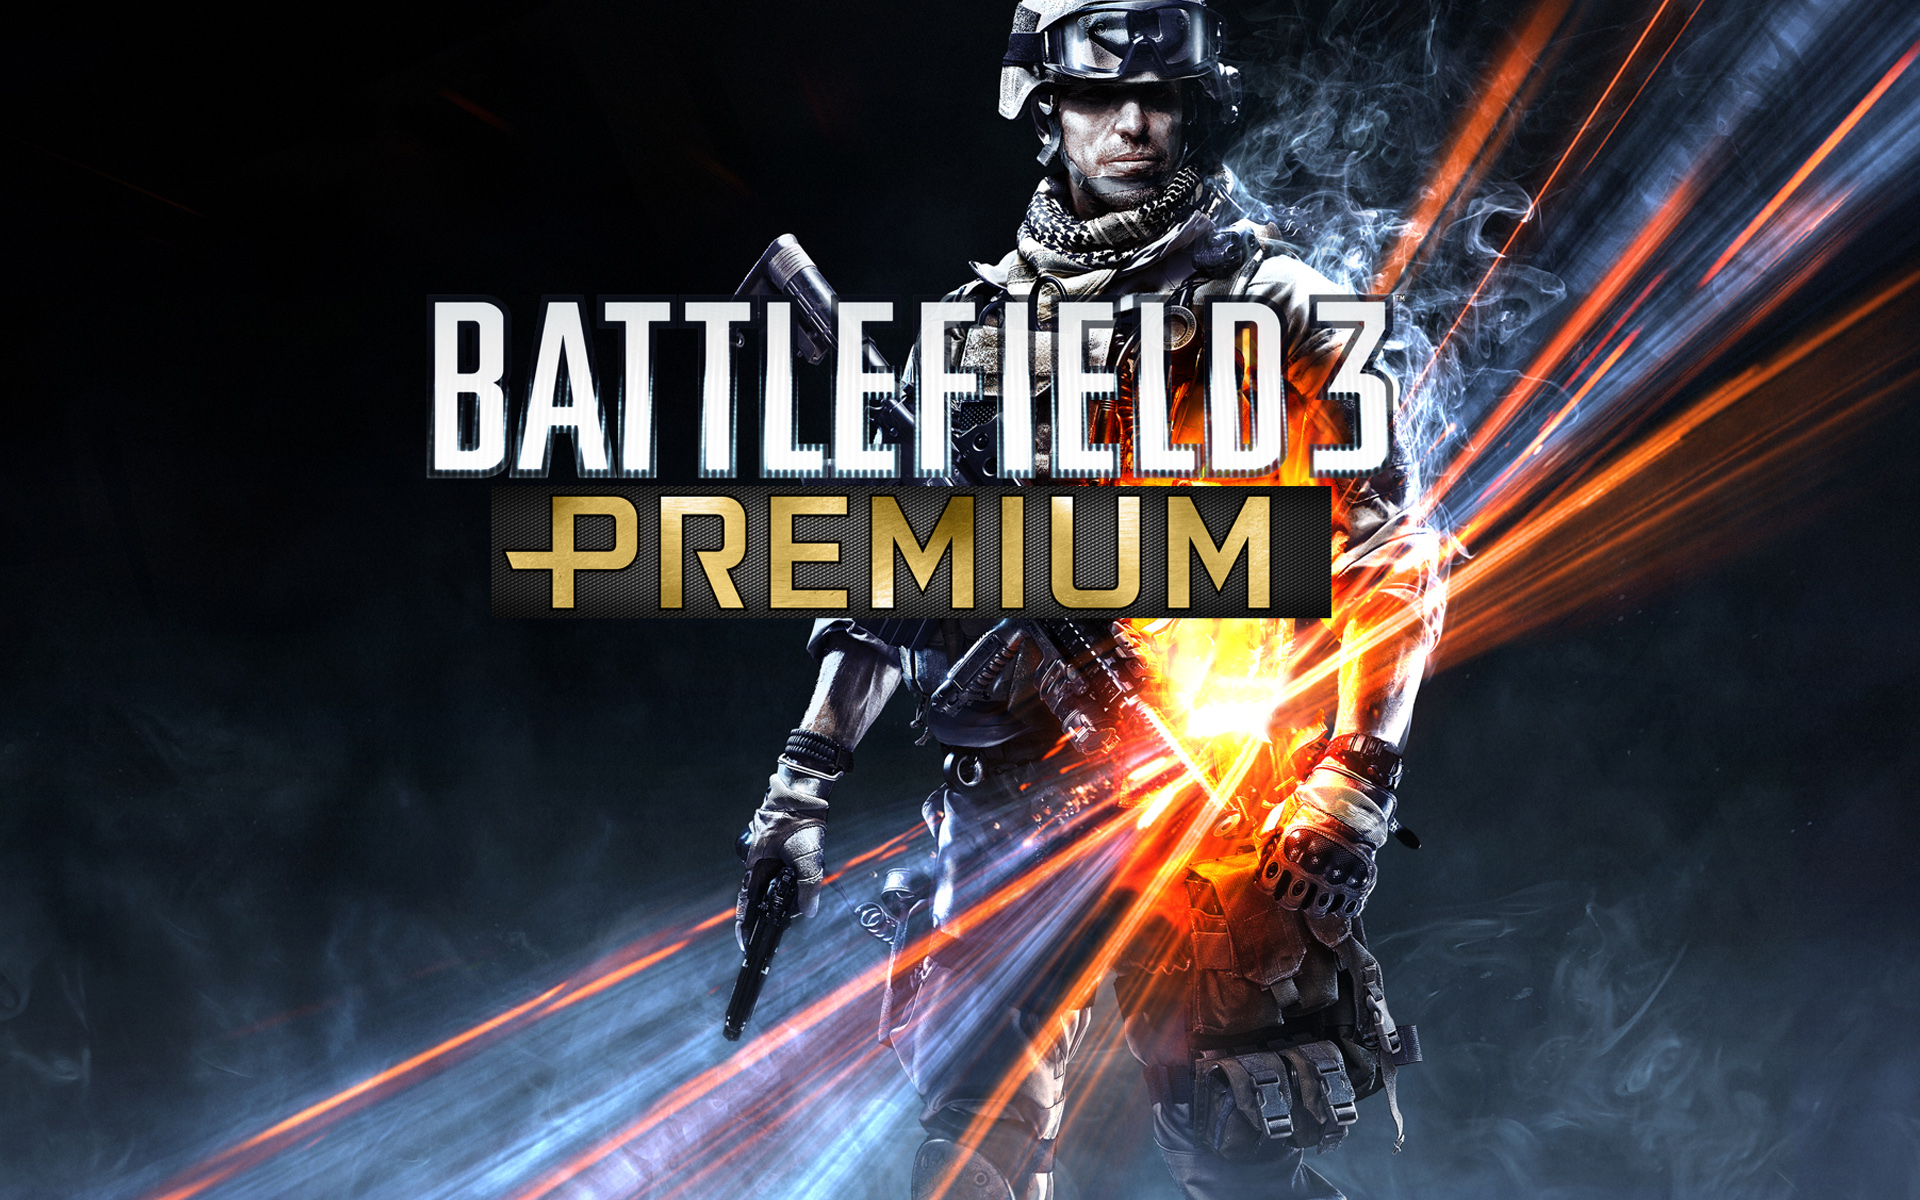 Battlefield Premium 23170 wallpaper